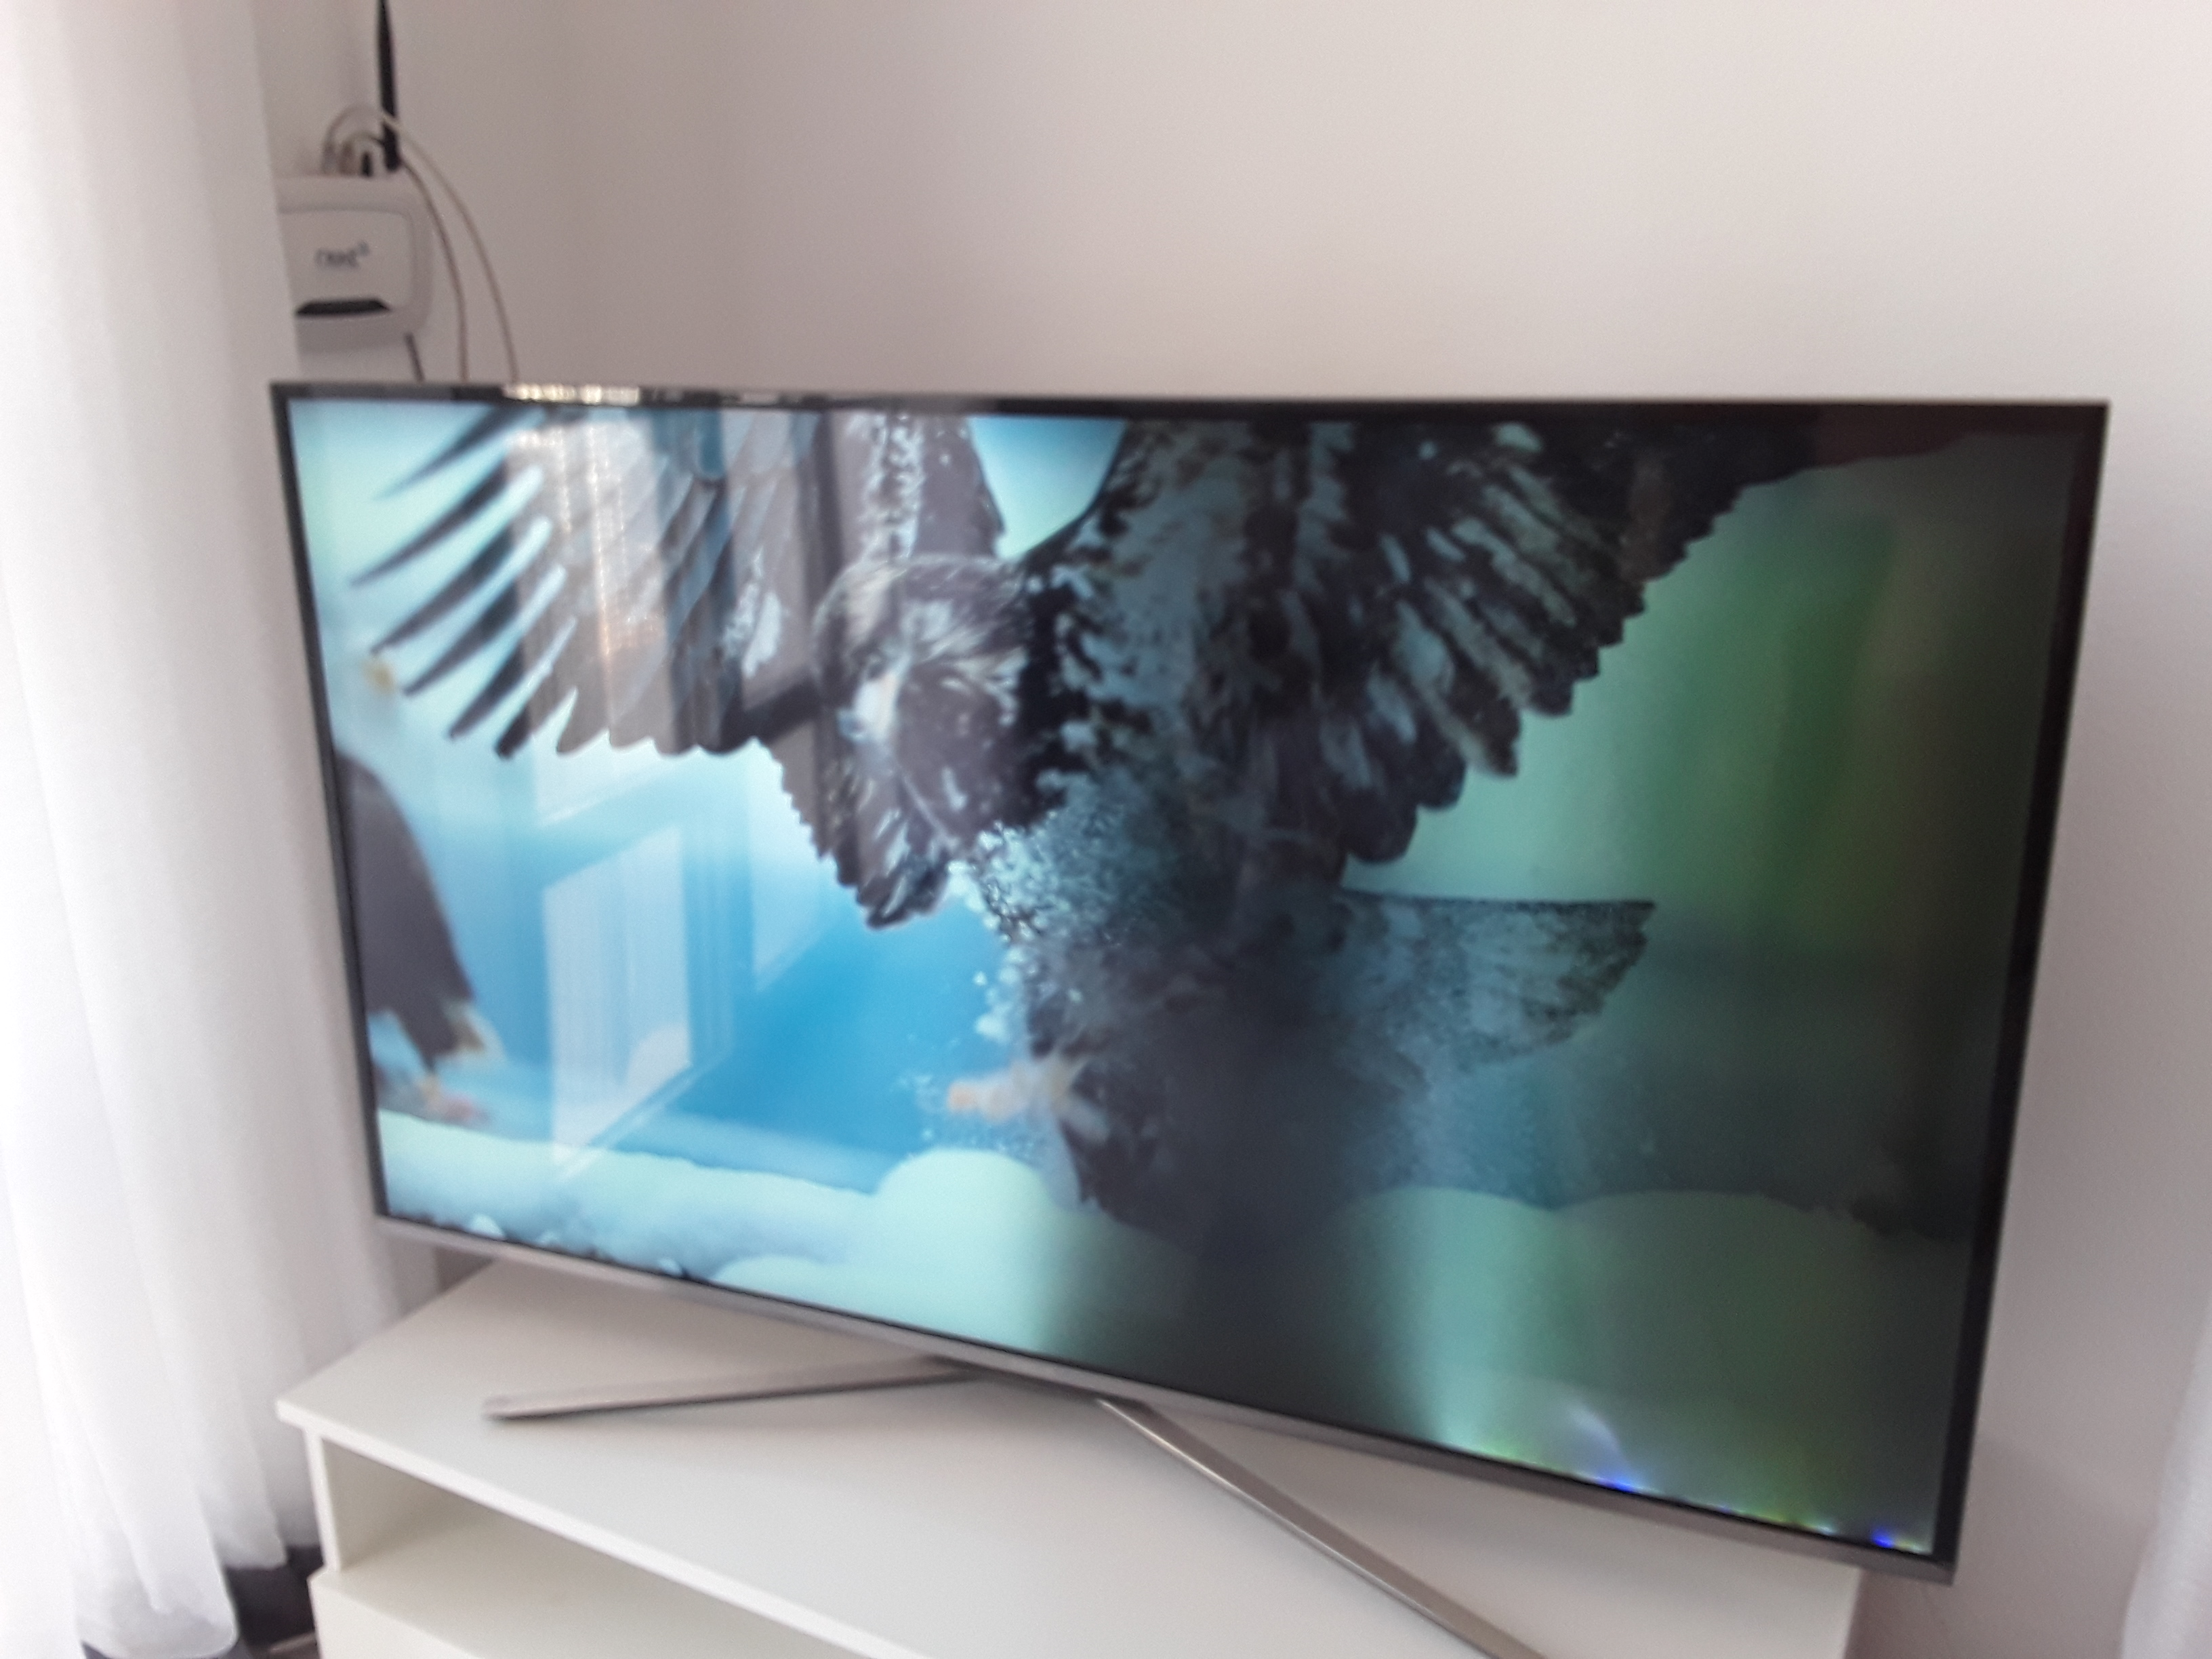 For sale: 48 inch smart Samsung TV - Buy and sell items in Mojacar